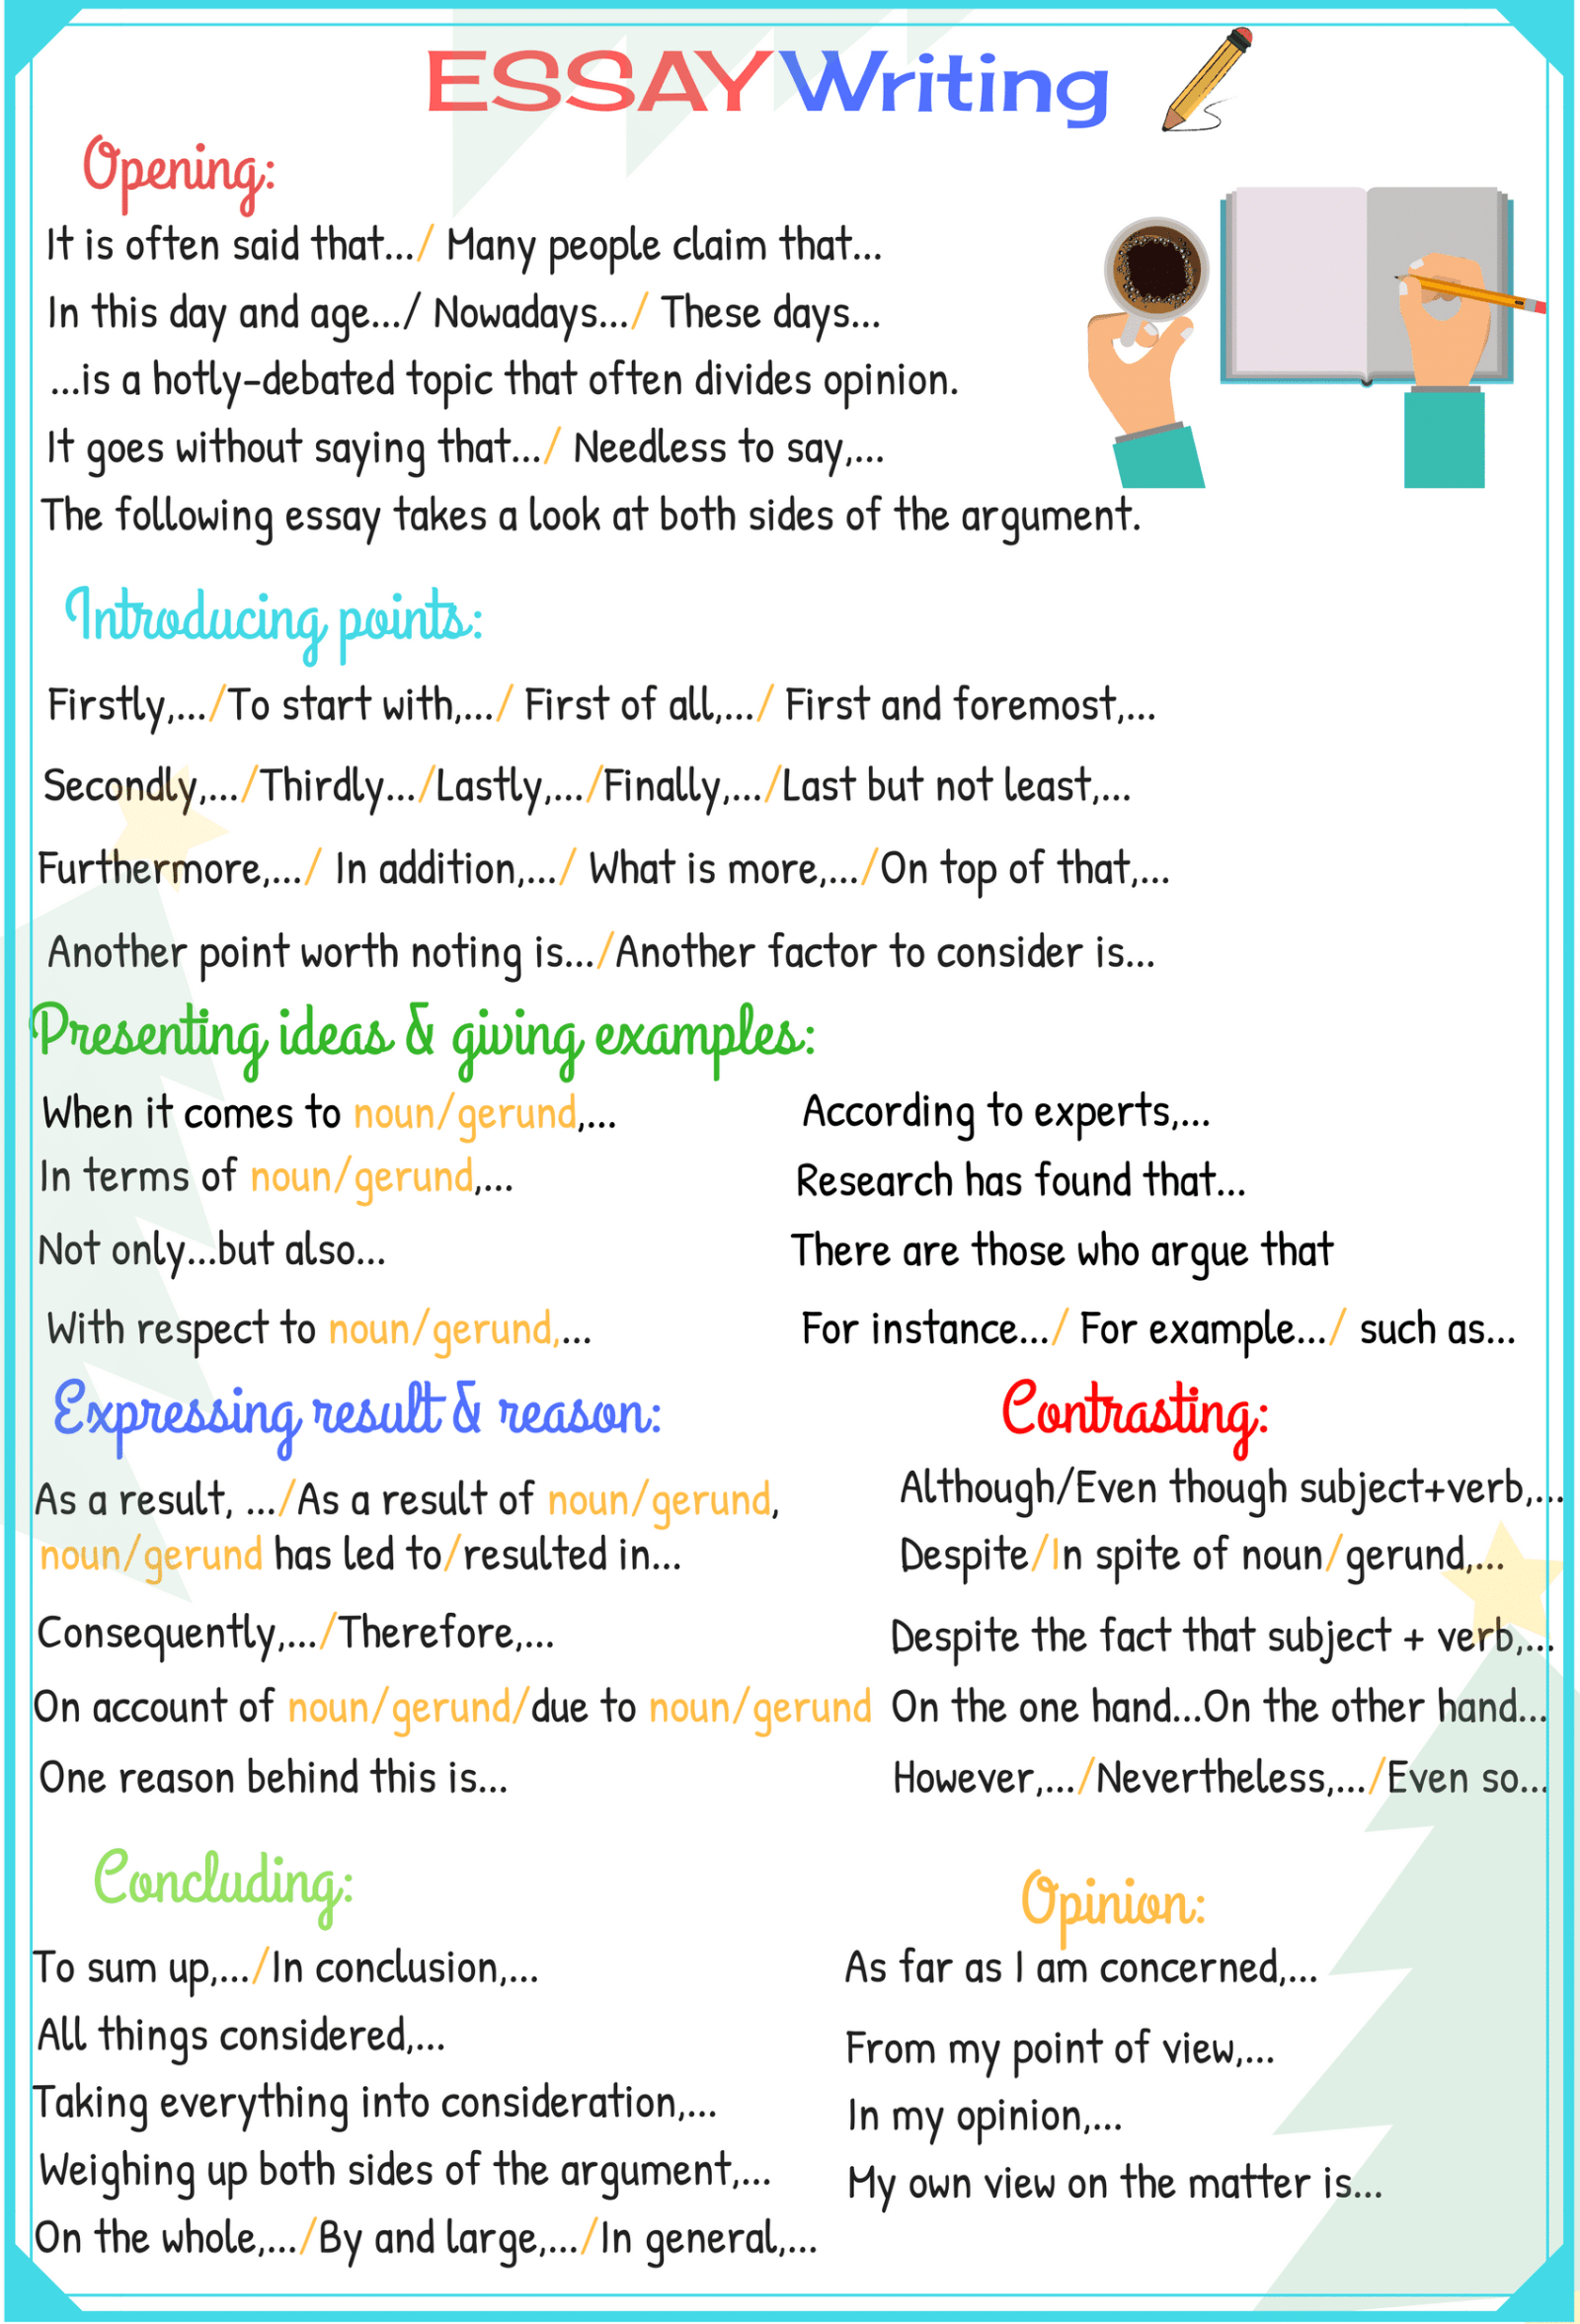 Custom coursework help page for students